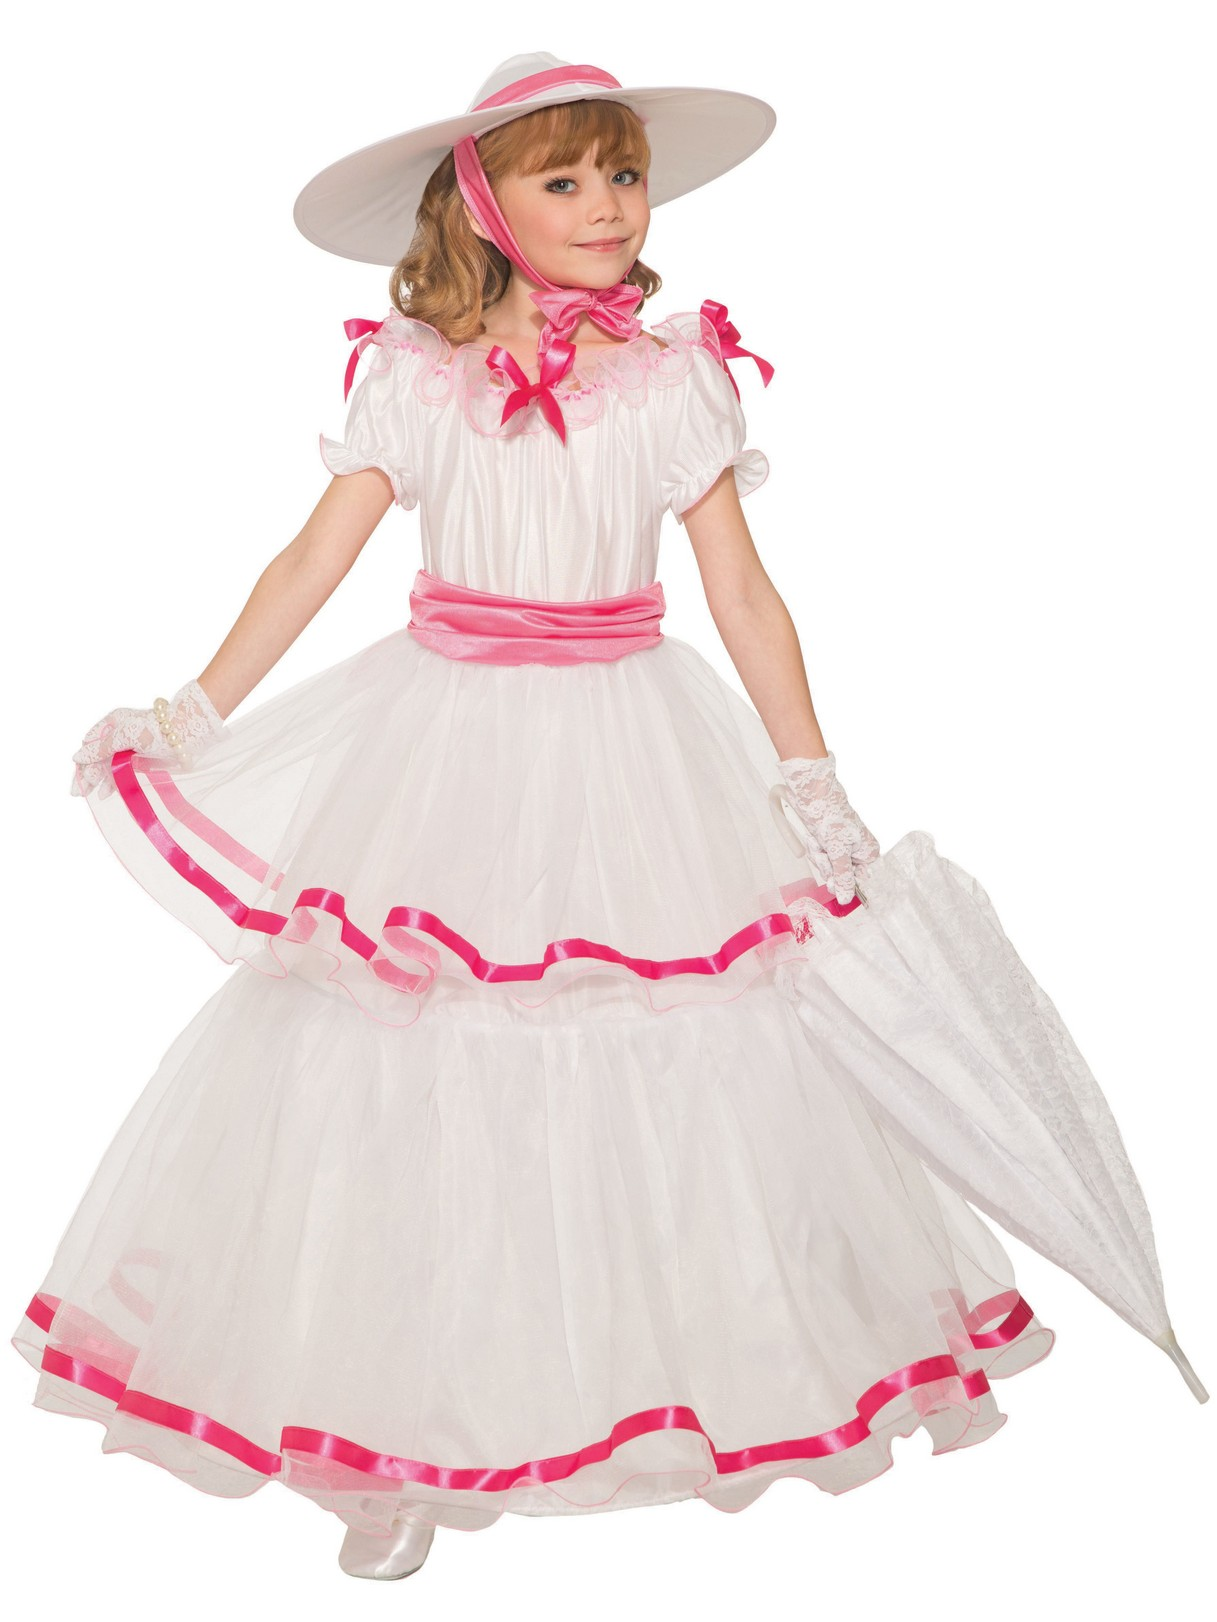 Southern Belle Costume - Partybellcom